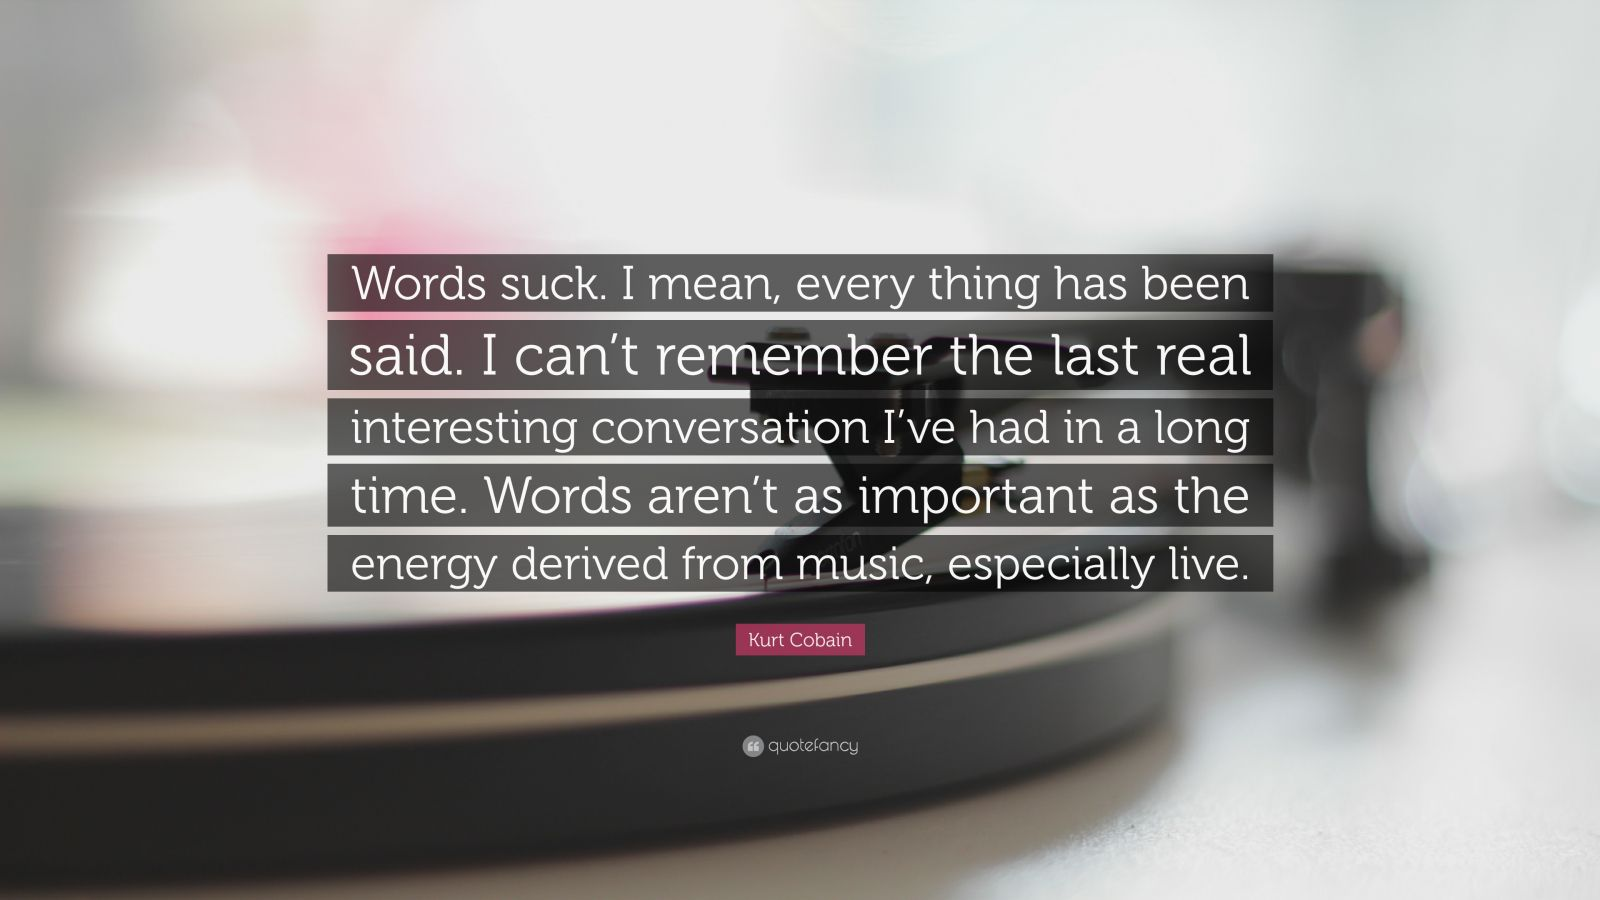 """Kurt Cobain Quote: """"Words suck. I mean, every thing has been said. I can't remember the last real interesting conversation I've had in a long time. Words aren't as important as the energy derived from music, especially live."""""""